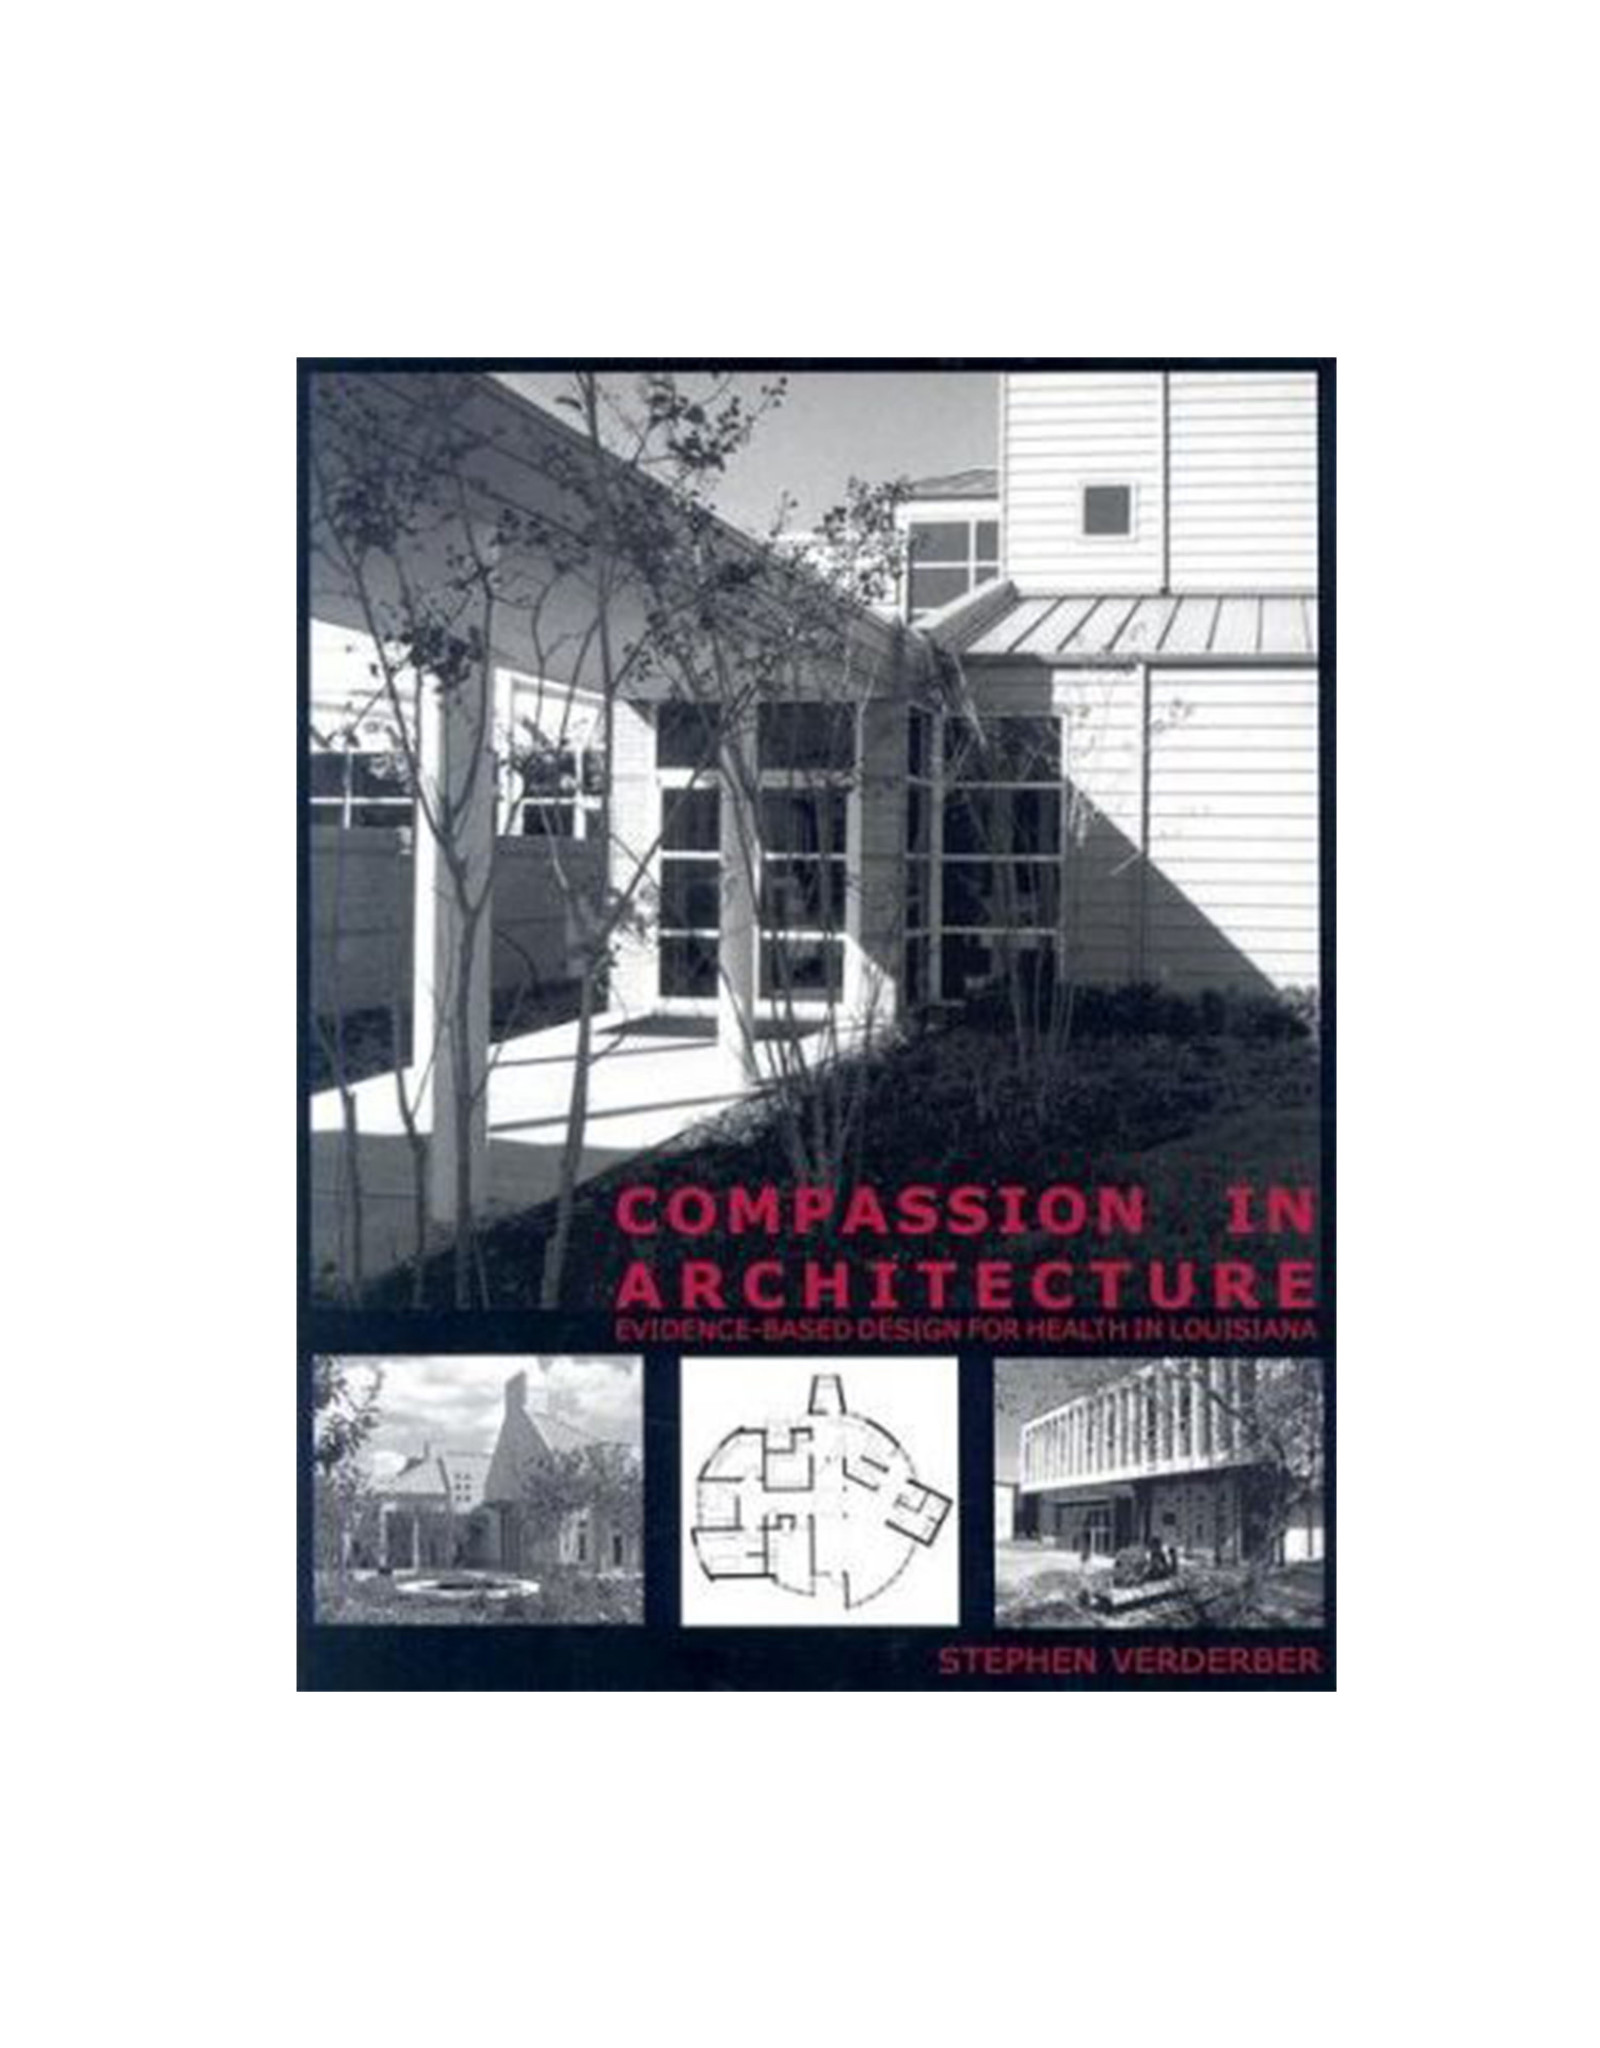 Compassion in Architecture: Evidence Based Design for Health in Louisiana